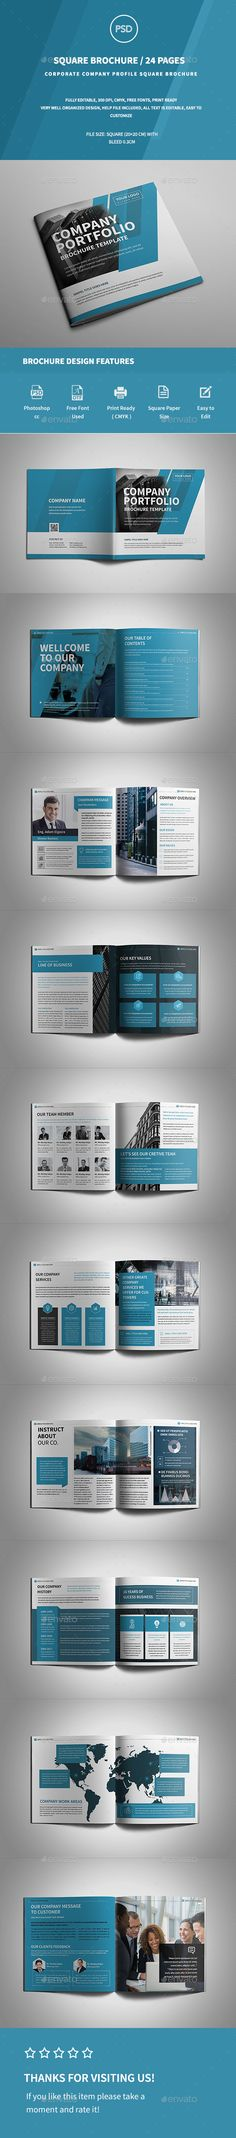 Square Company Profile Brochure — Photoshop PSD #clean #stylish • Download ➝ https://graphicriver.net/item/square-company-profile-brochure/19470078?ref=pxcr